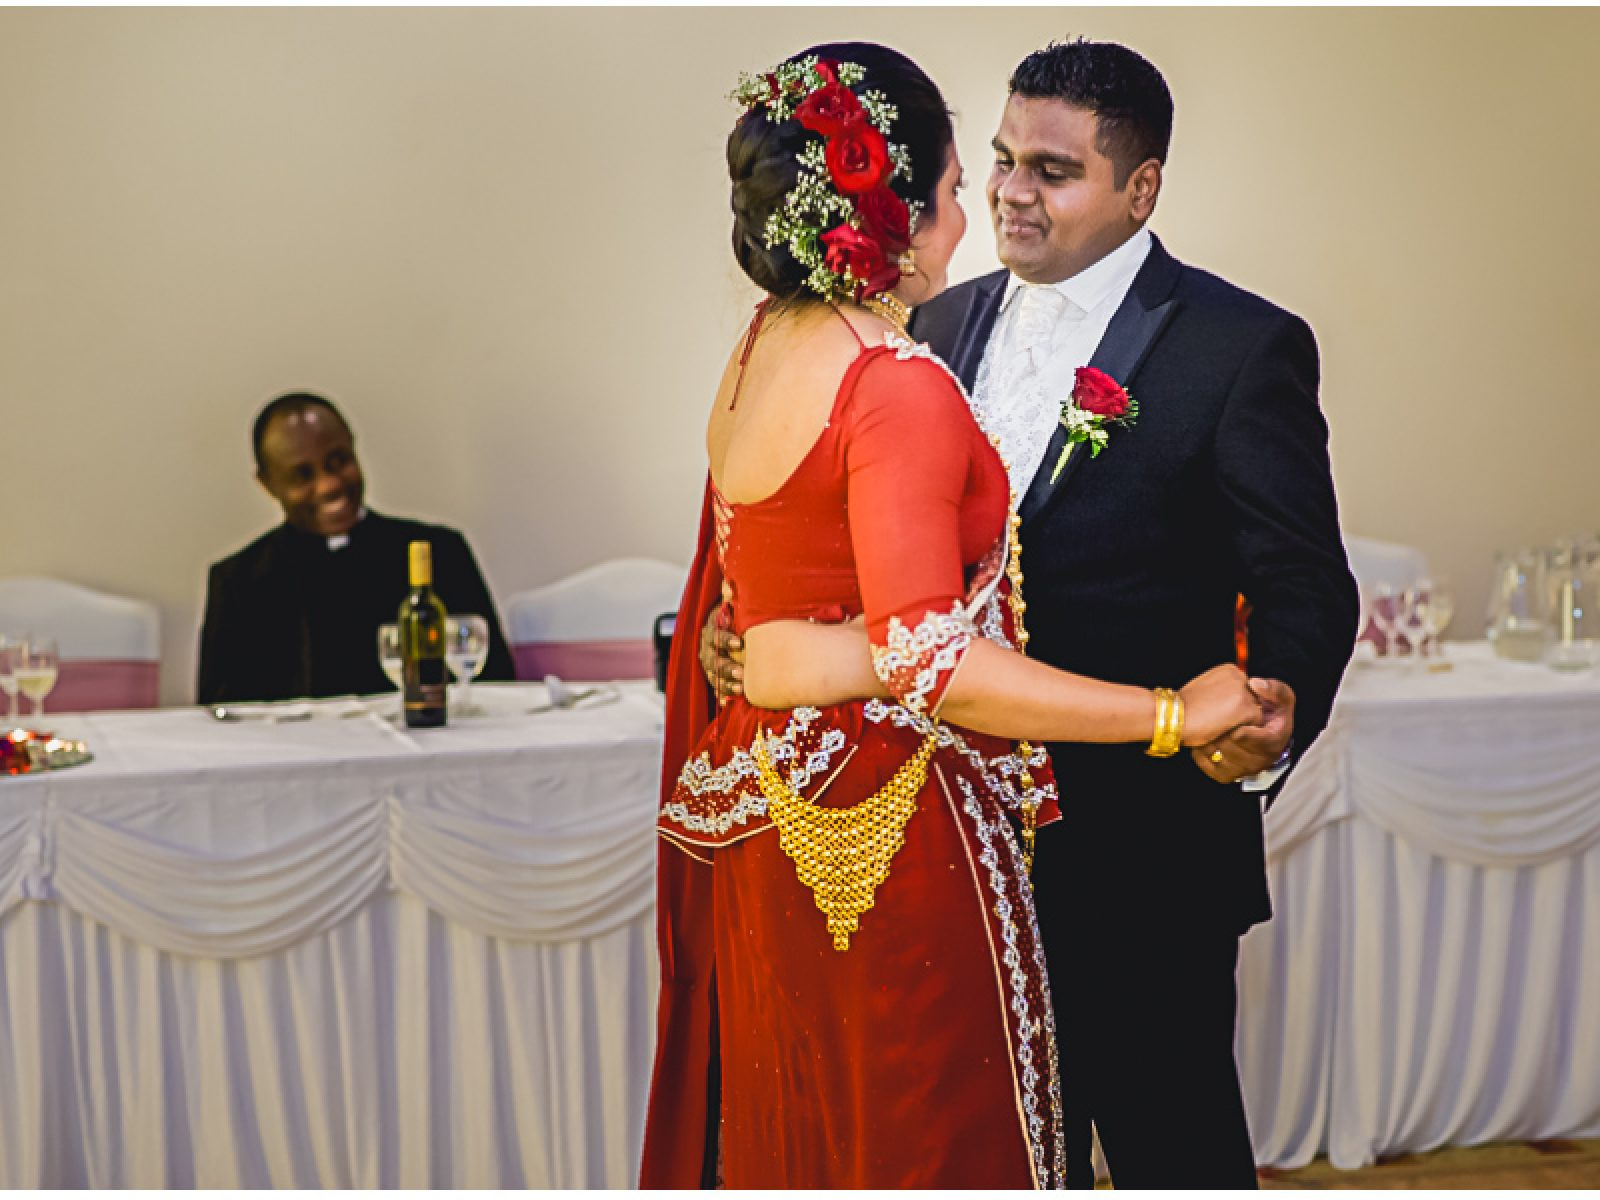 75 1600x1200 - Darshani and Anthony - wedding photographer in London